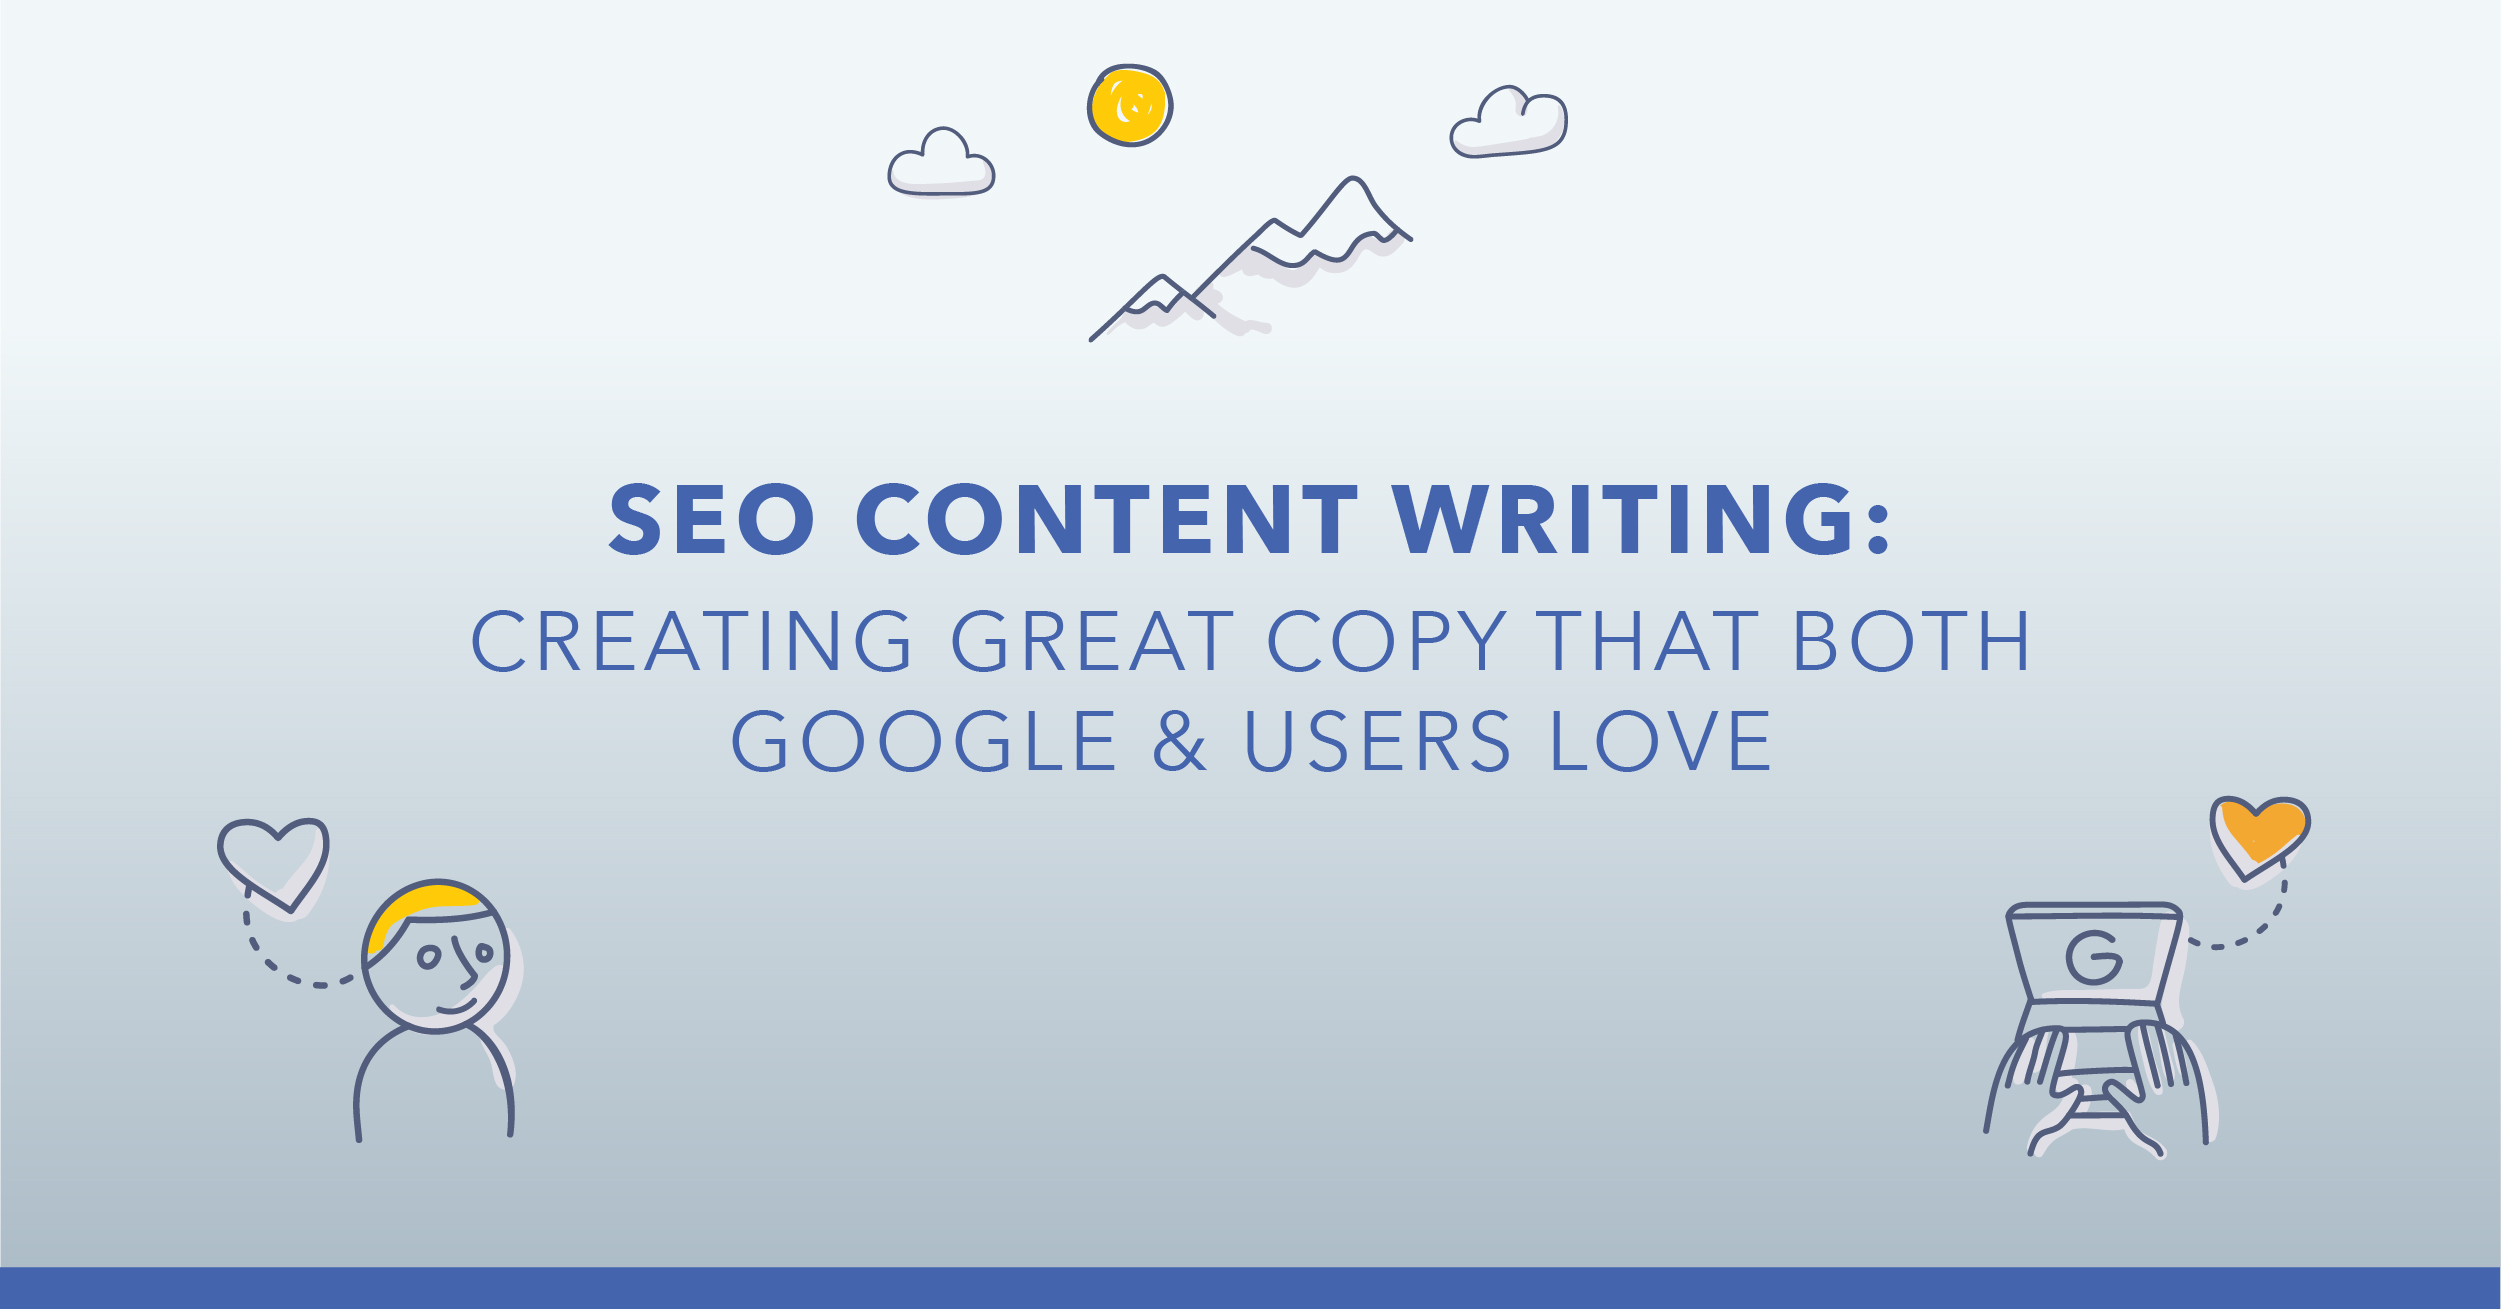 SEO Content Writing: Creating Copy That Both Google and Users Love